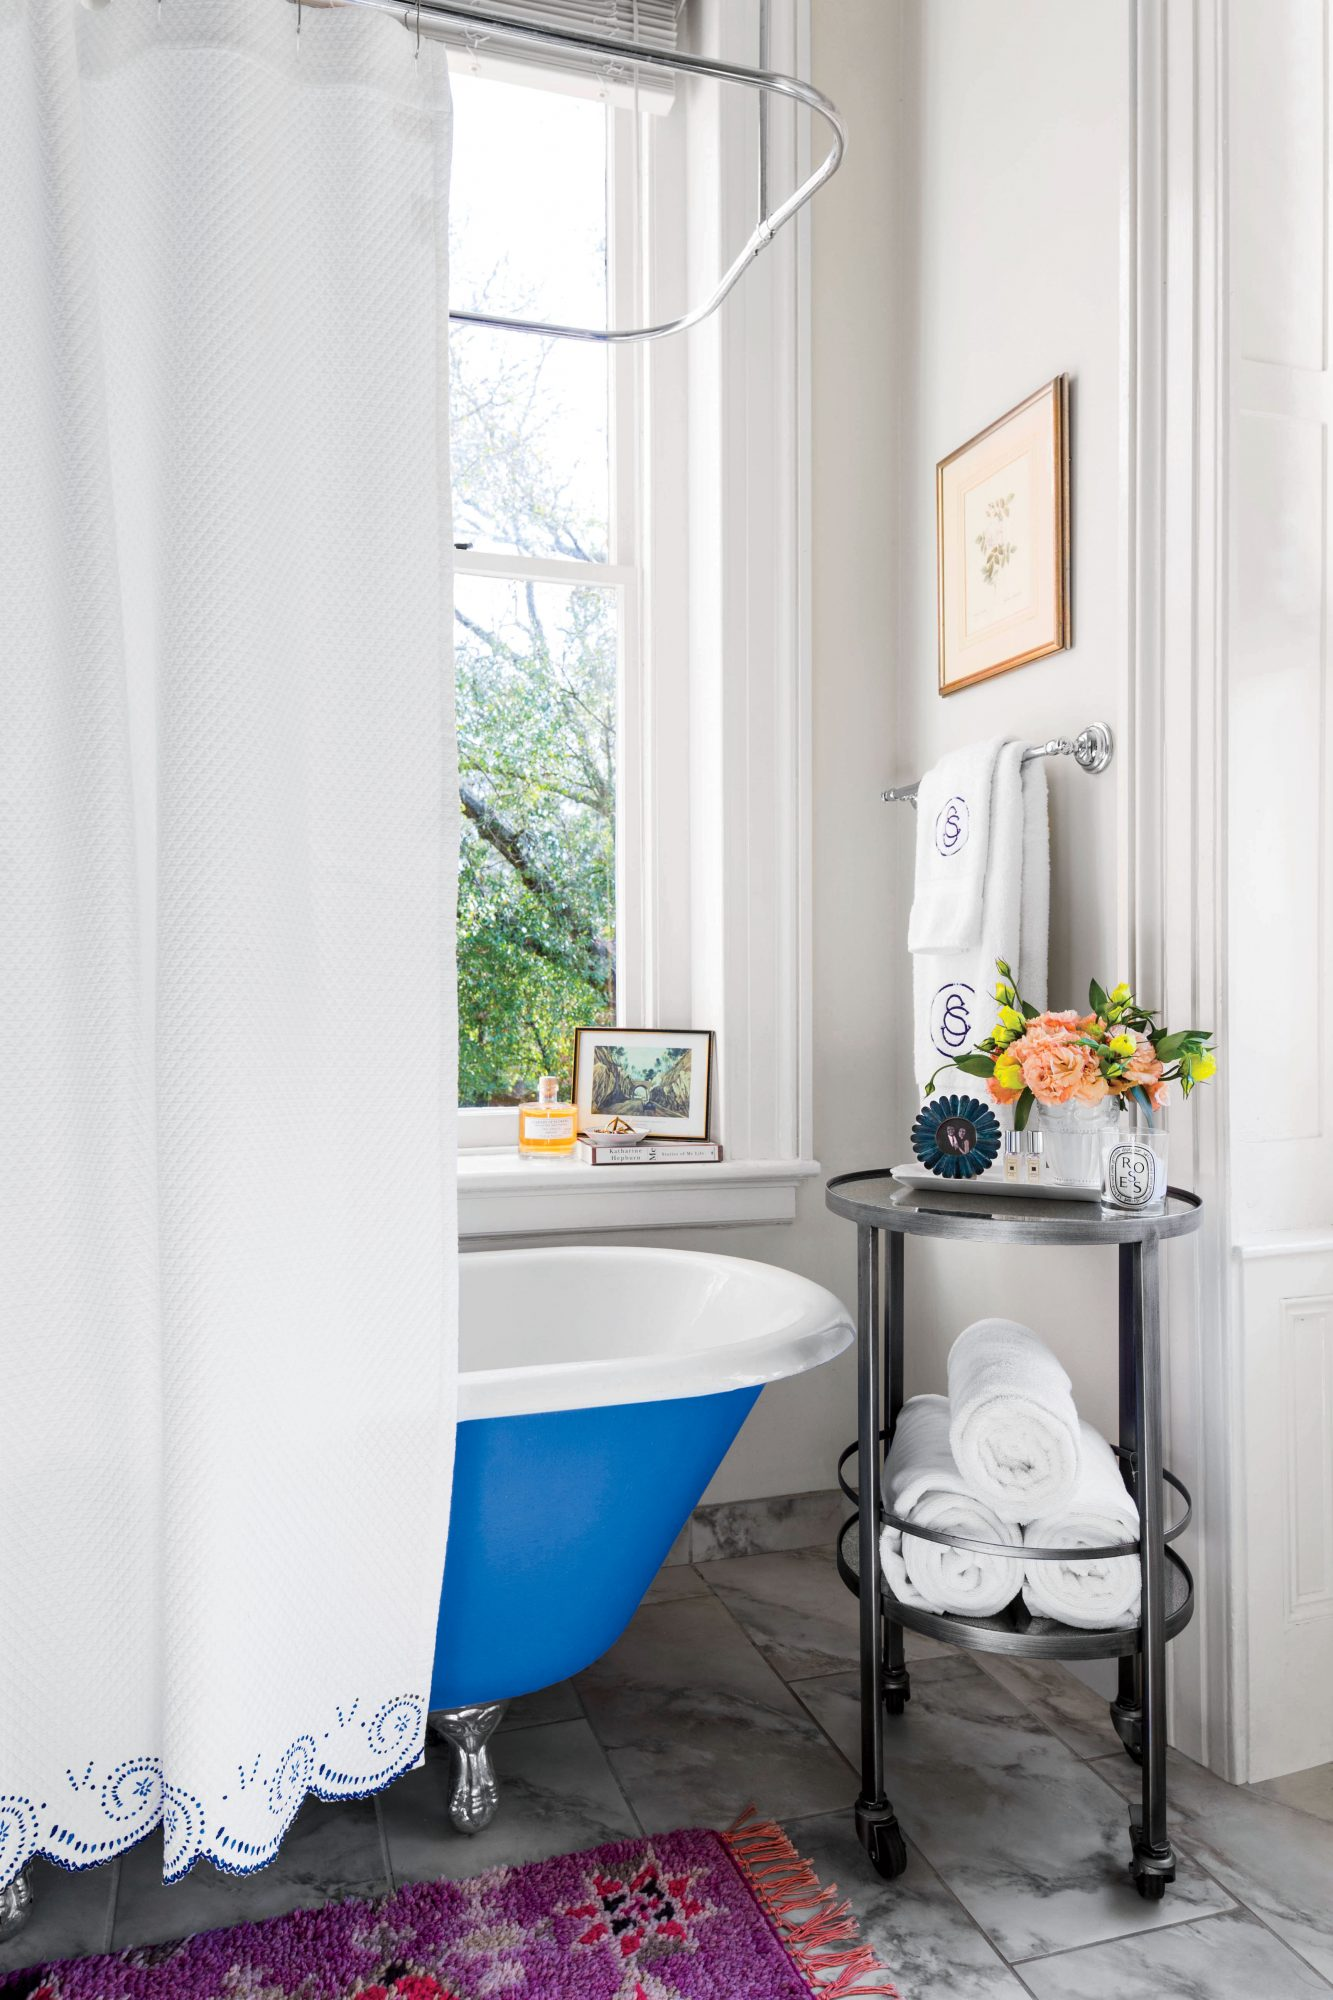 before buying an antique clawfoot tub